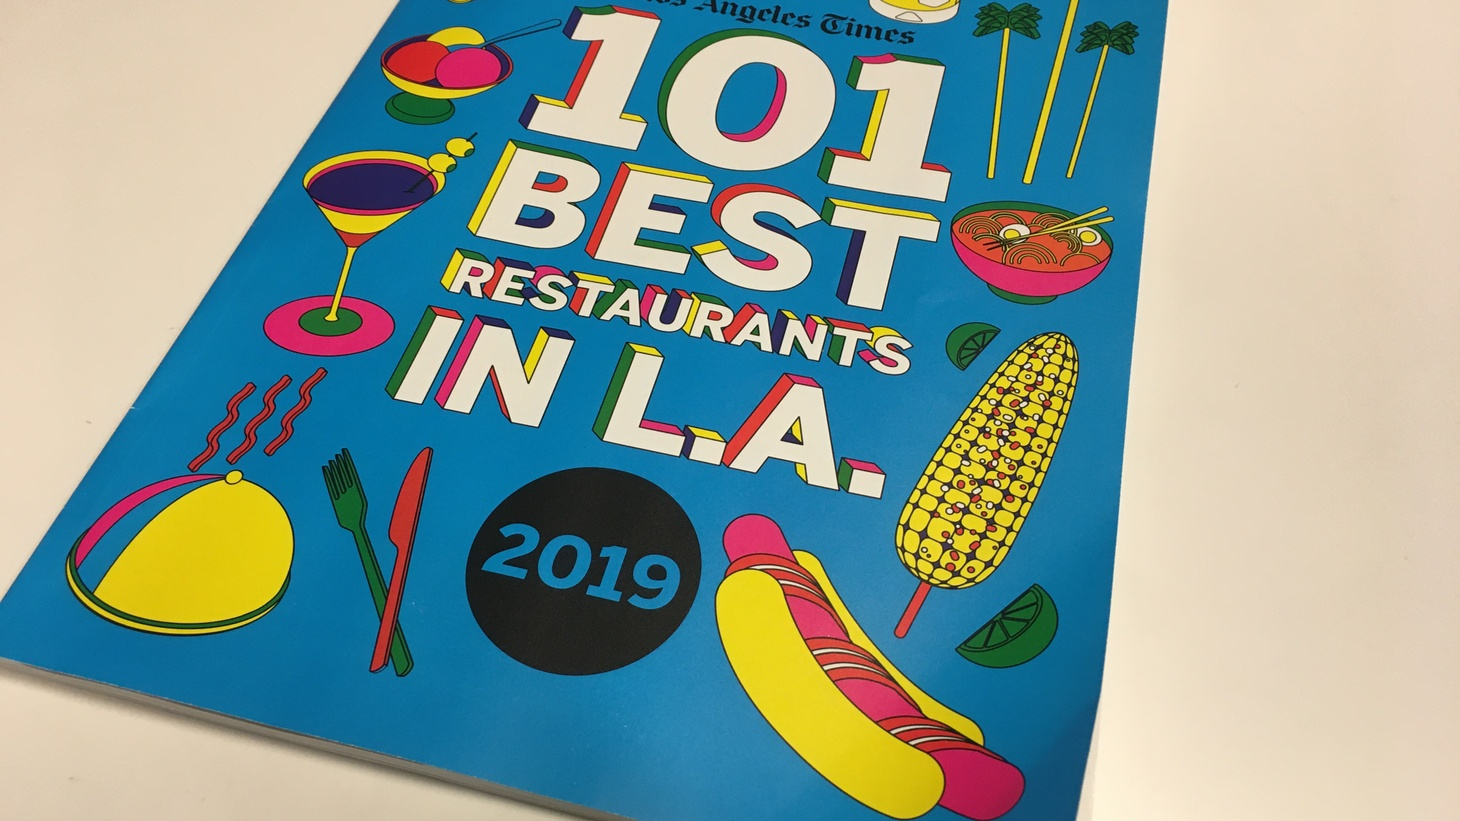 The LA Times 101 Best Restaurants list.